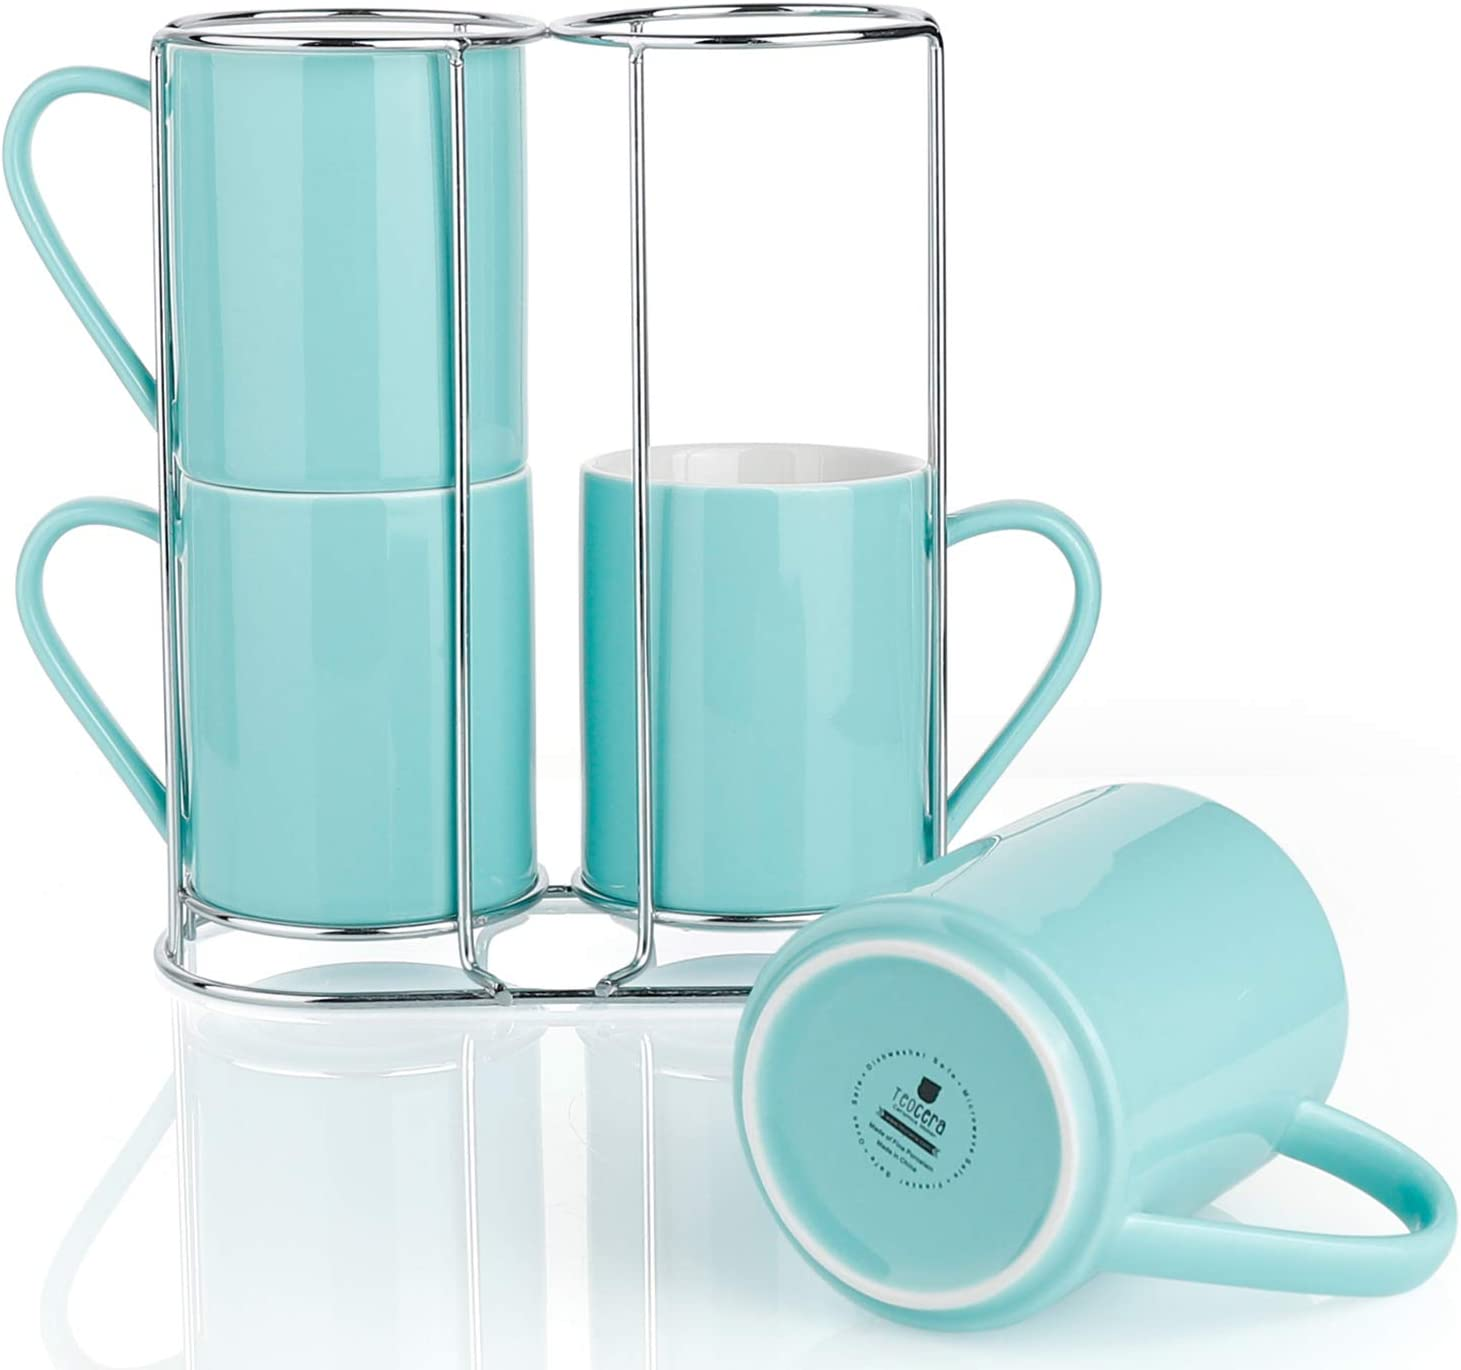 Teocera Porcelain Coffee Mugs with Stand, Coffee Mug Set - 11 Ounce for Tea, Cocoa, and Mulled Drinks - Set of 4, Turquoise